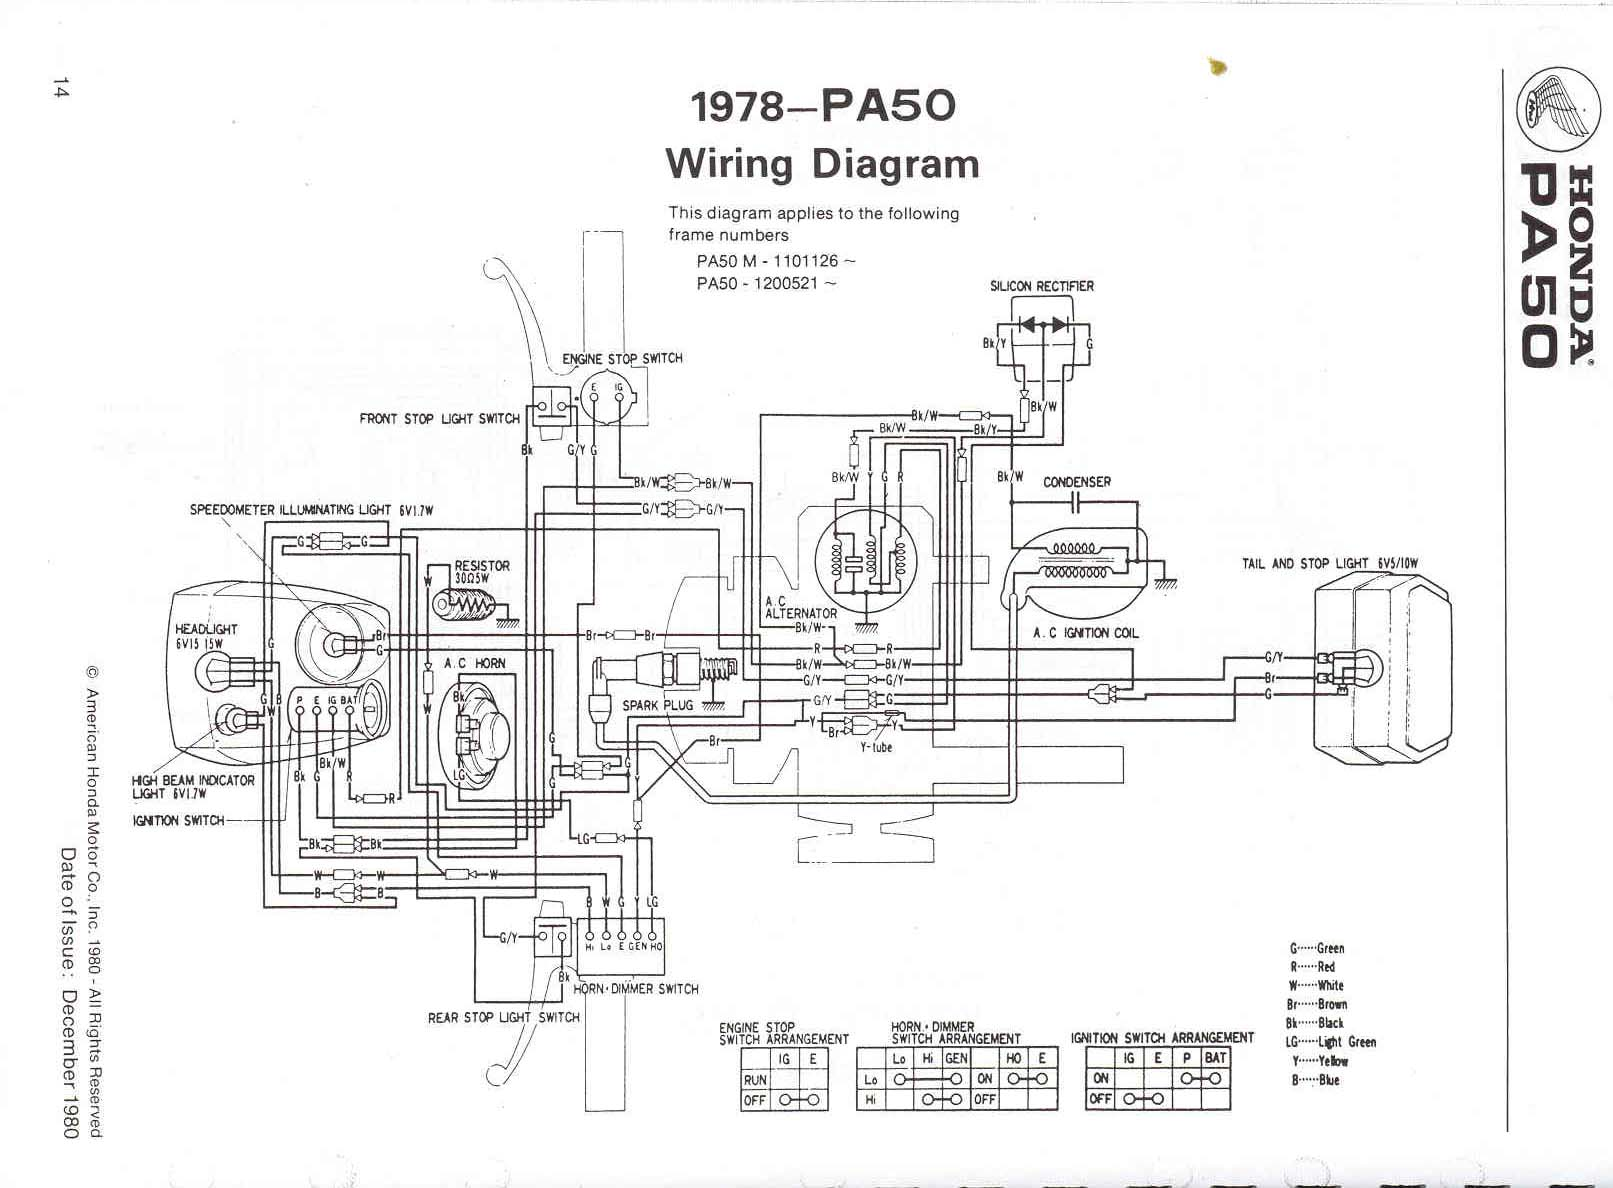 Re: Wiring diagram 1980 Honda PA 50 — Moped Army